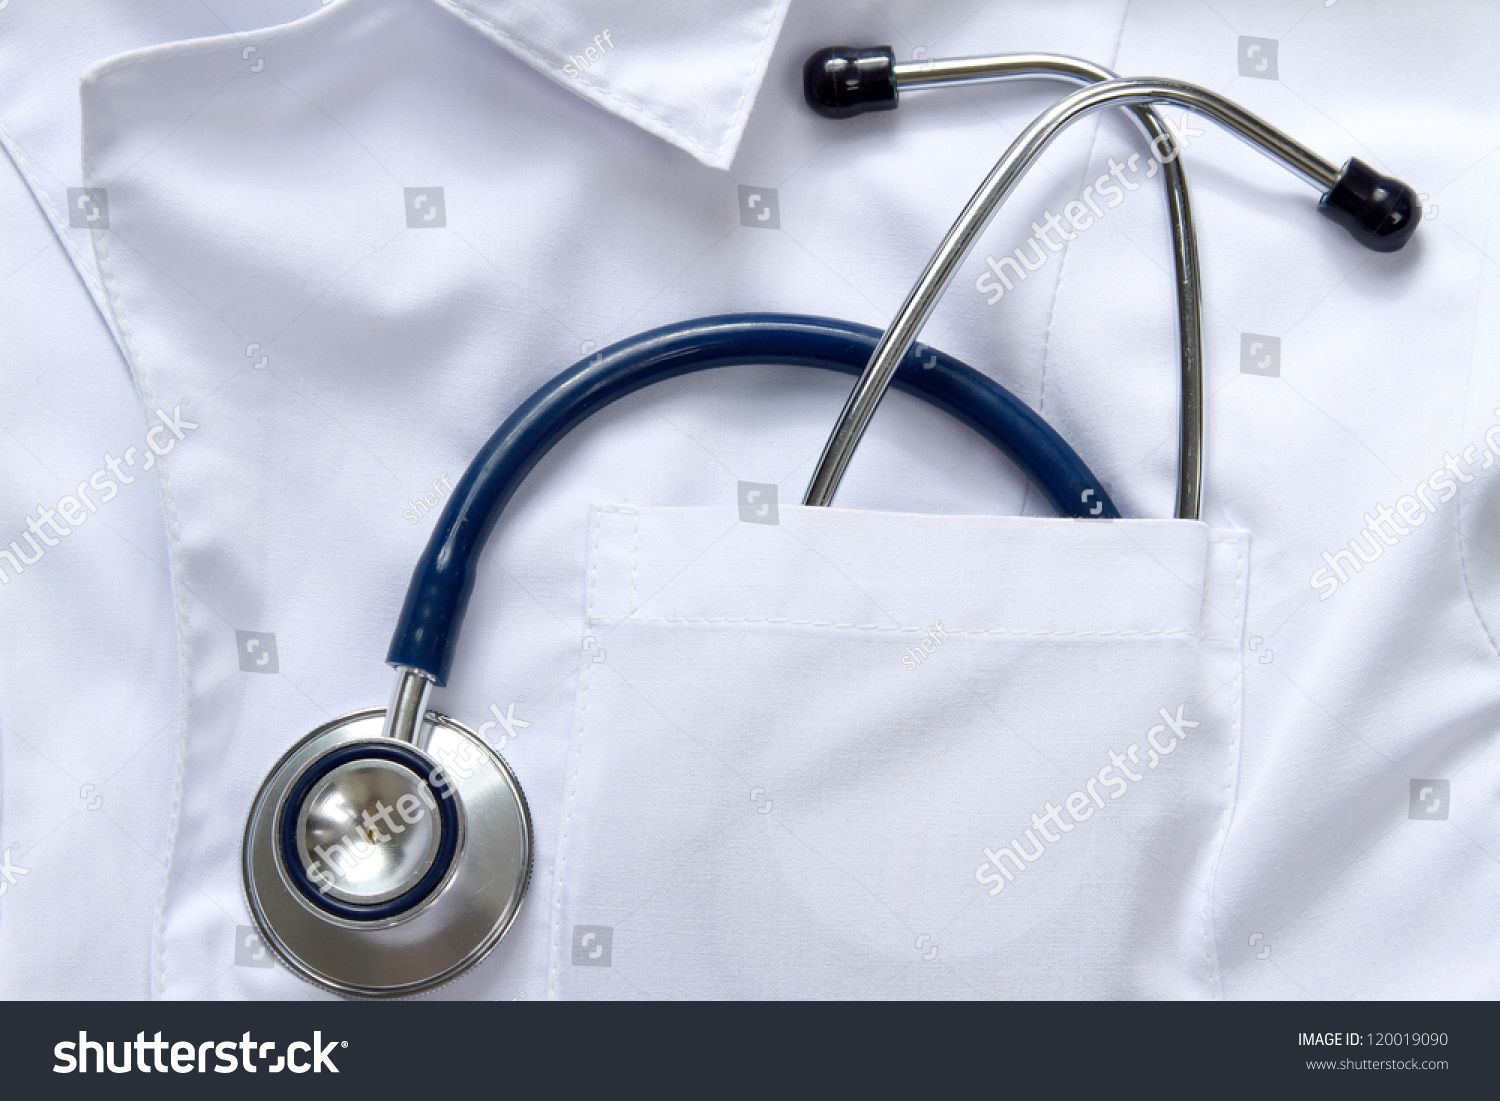 Doctor Coat With Stethoscope Ad Affiliate Doctor Coat Stethoscope Doctor Coat Stock Photos Photo Editing